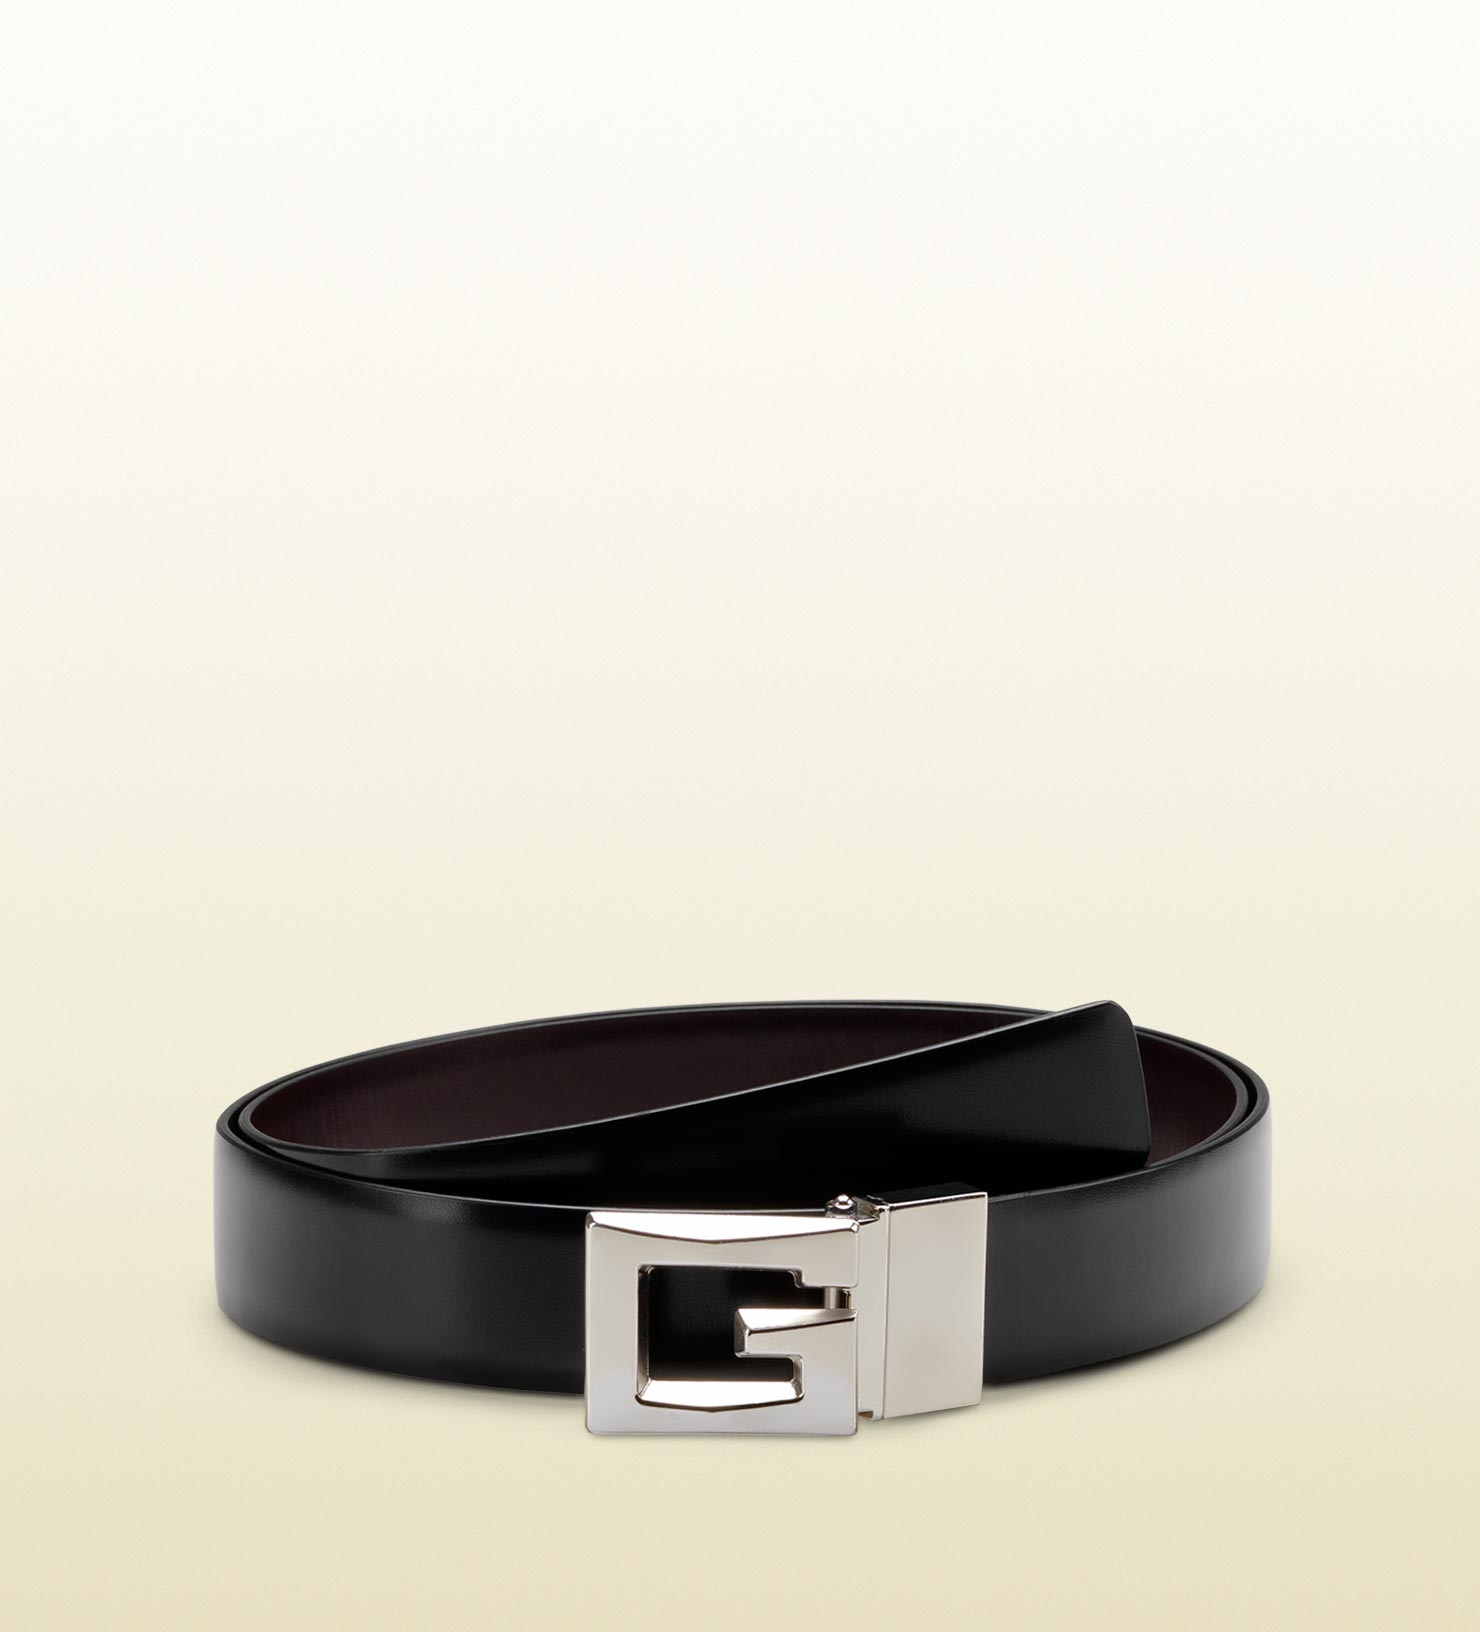 ee1d9e33169 Lyst - Gucci Reversible Belt with Raised Square G Buckle in Black ...